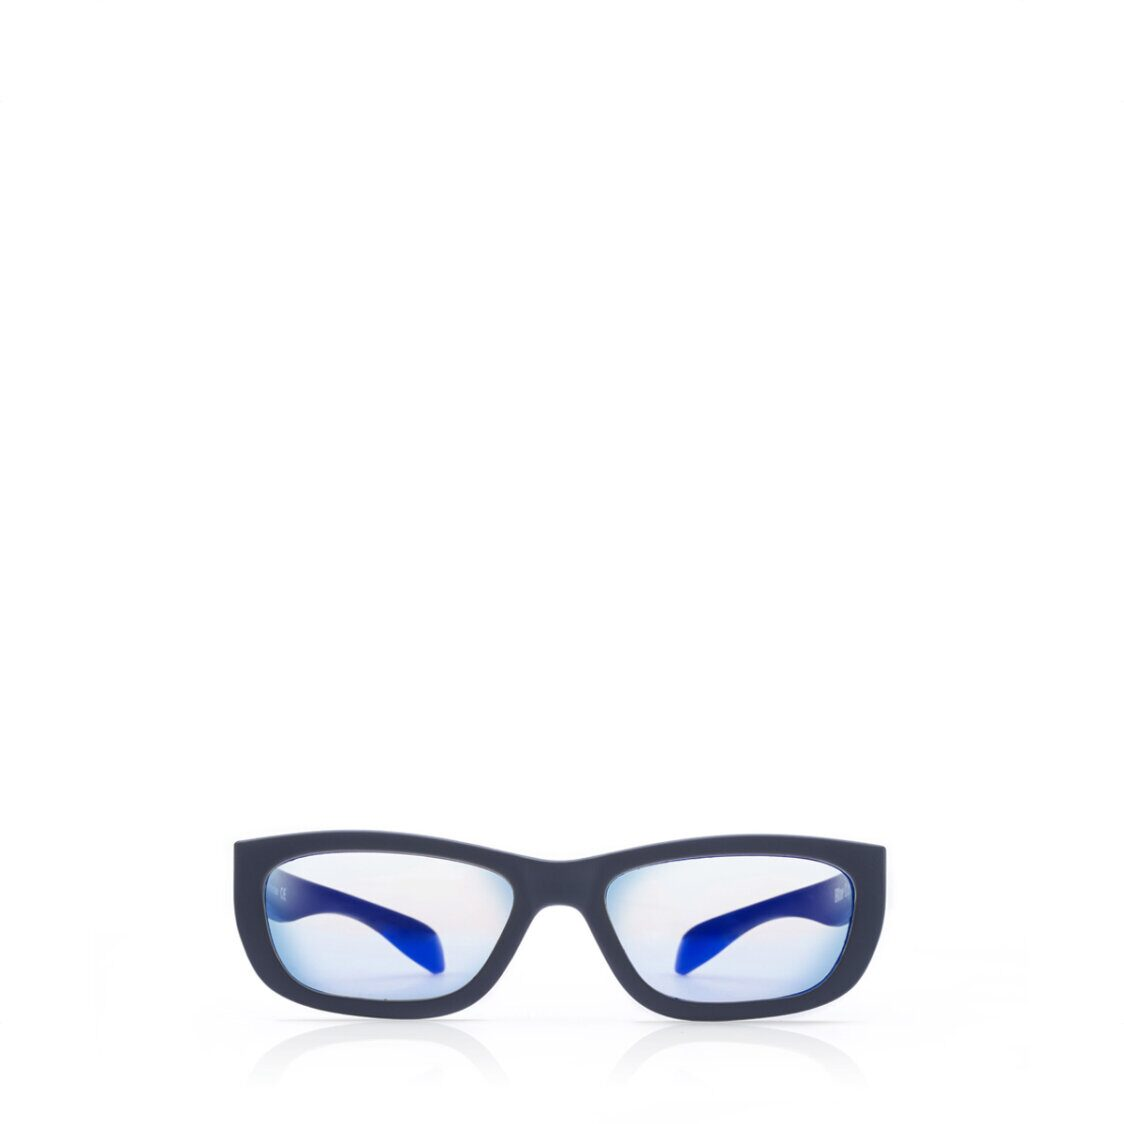 Shadez Eyewear Blue Light Grey Adult 16 years old